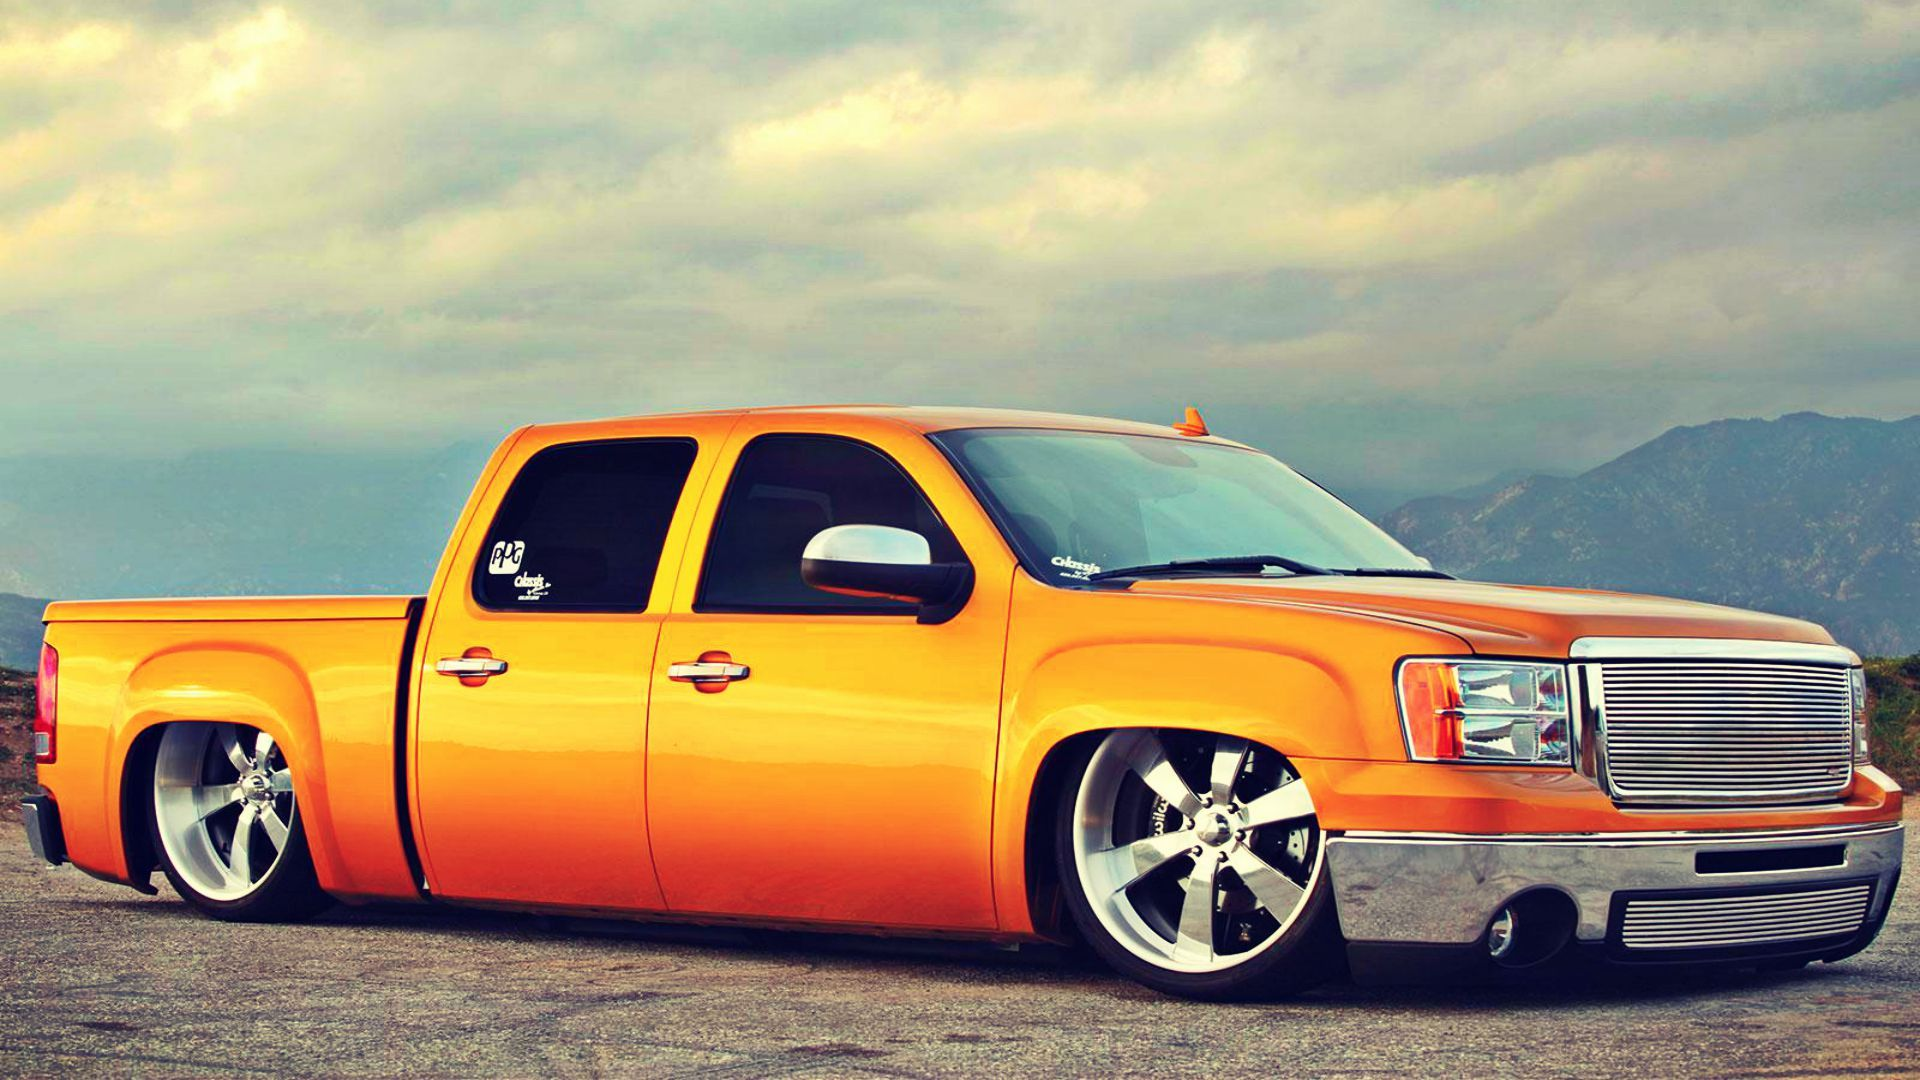 Modified Vehicle Gmc Cars httpwwwdavesinclairbuickgmccom